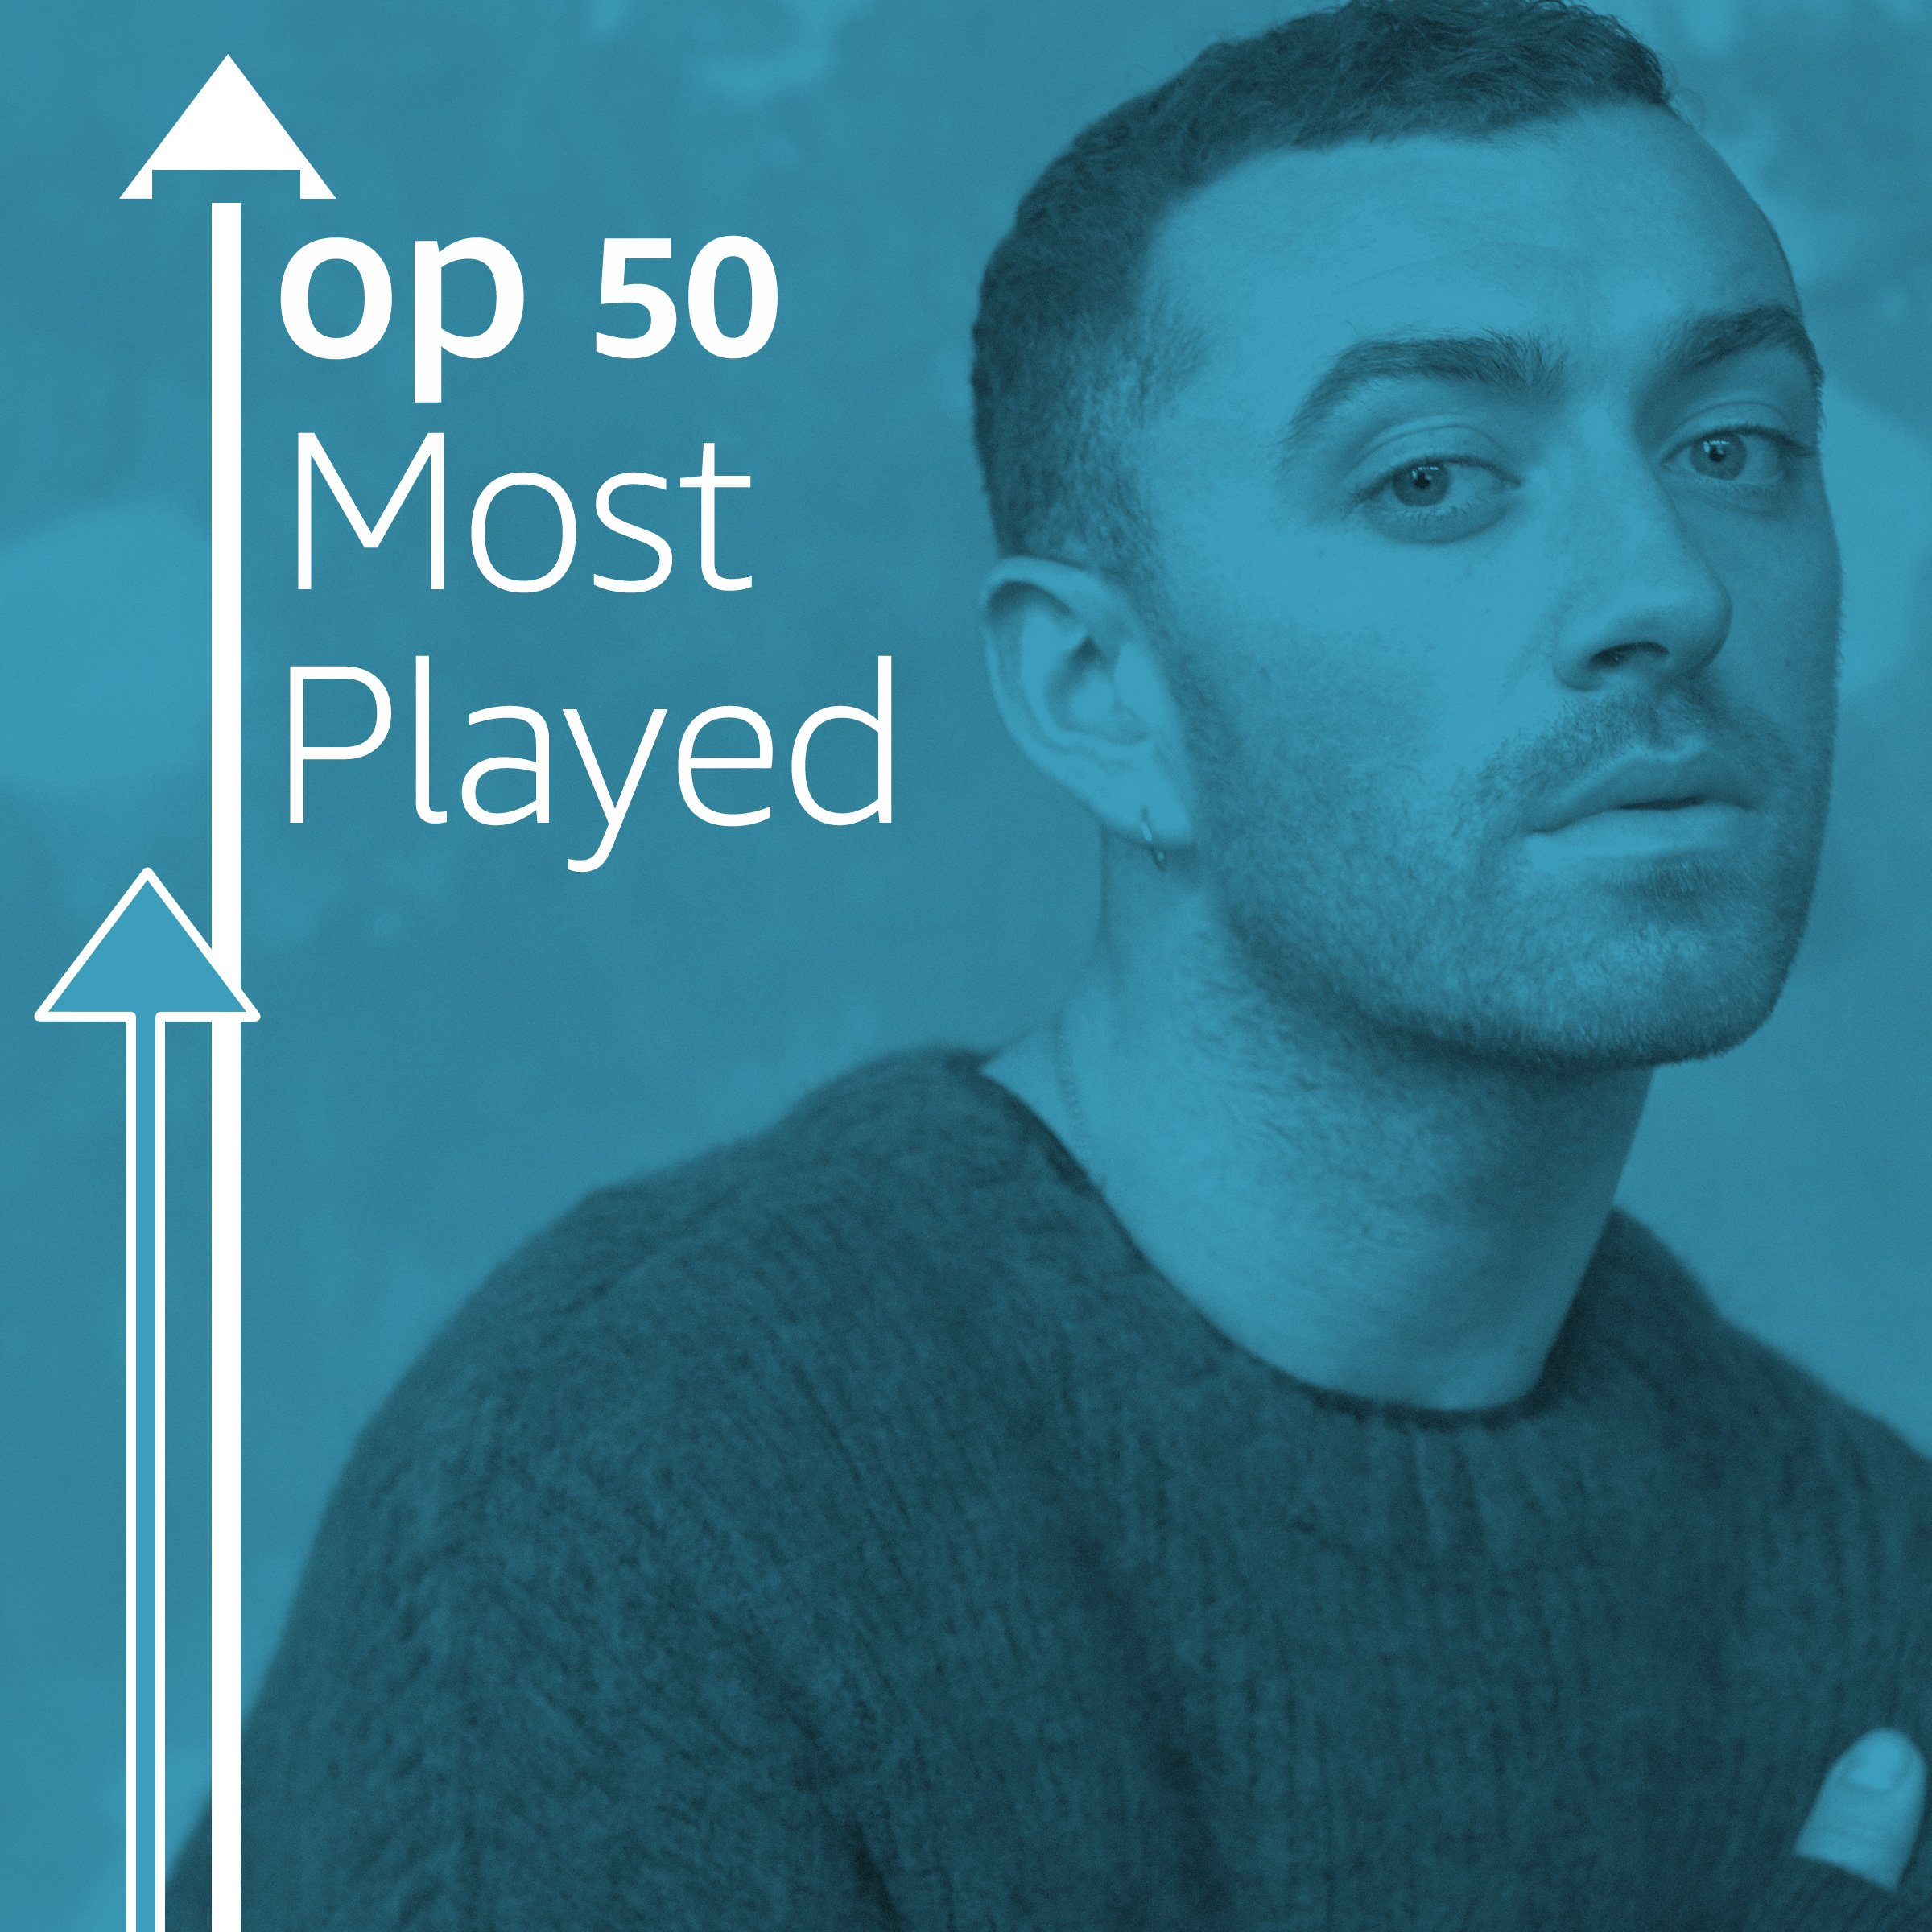 Top 50 Most Played